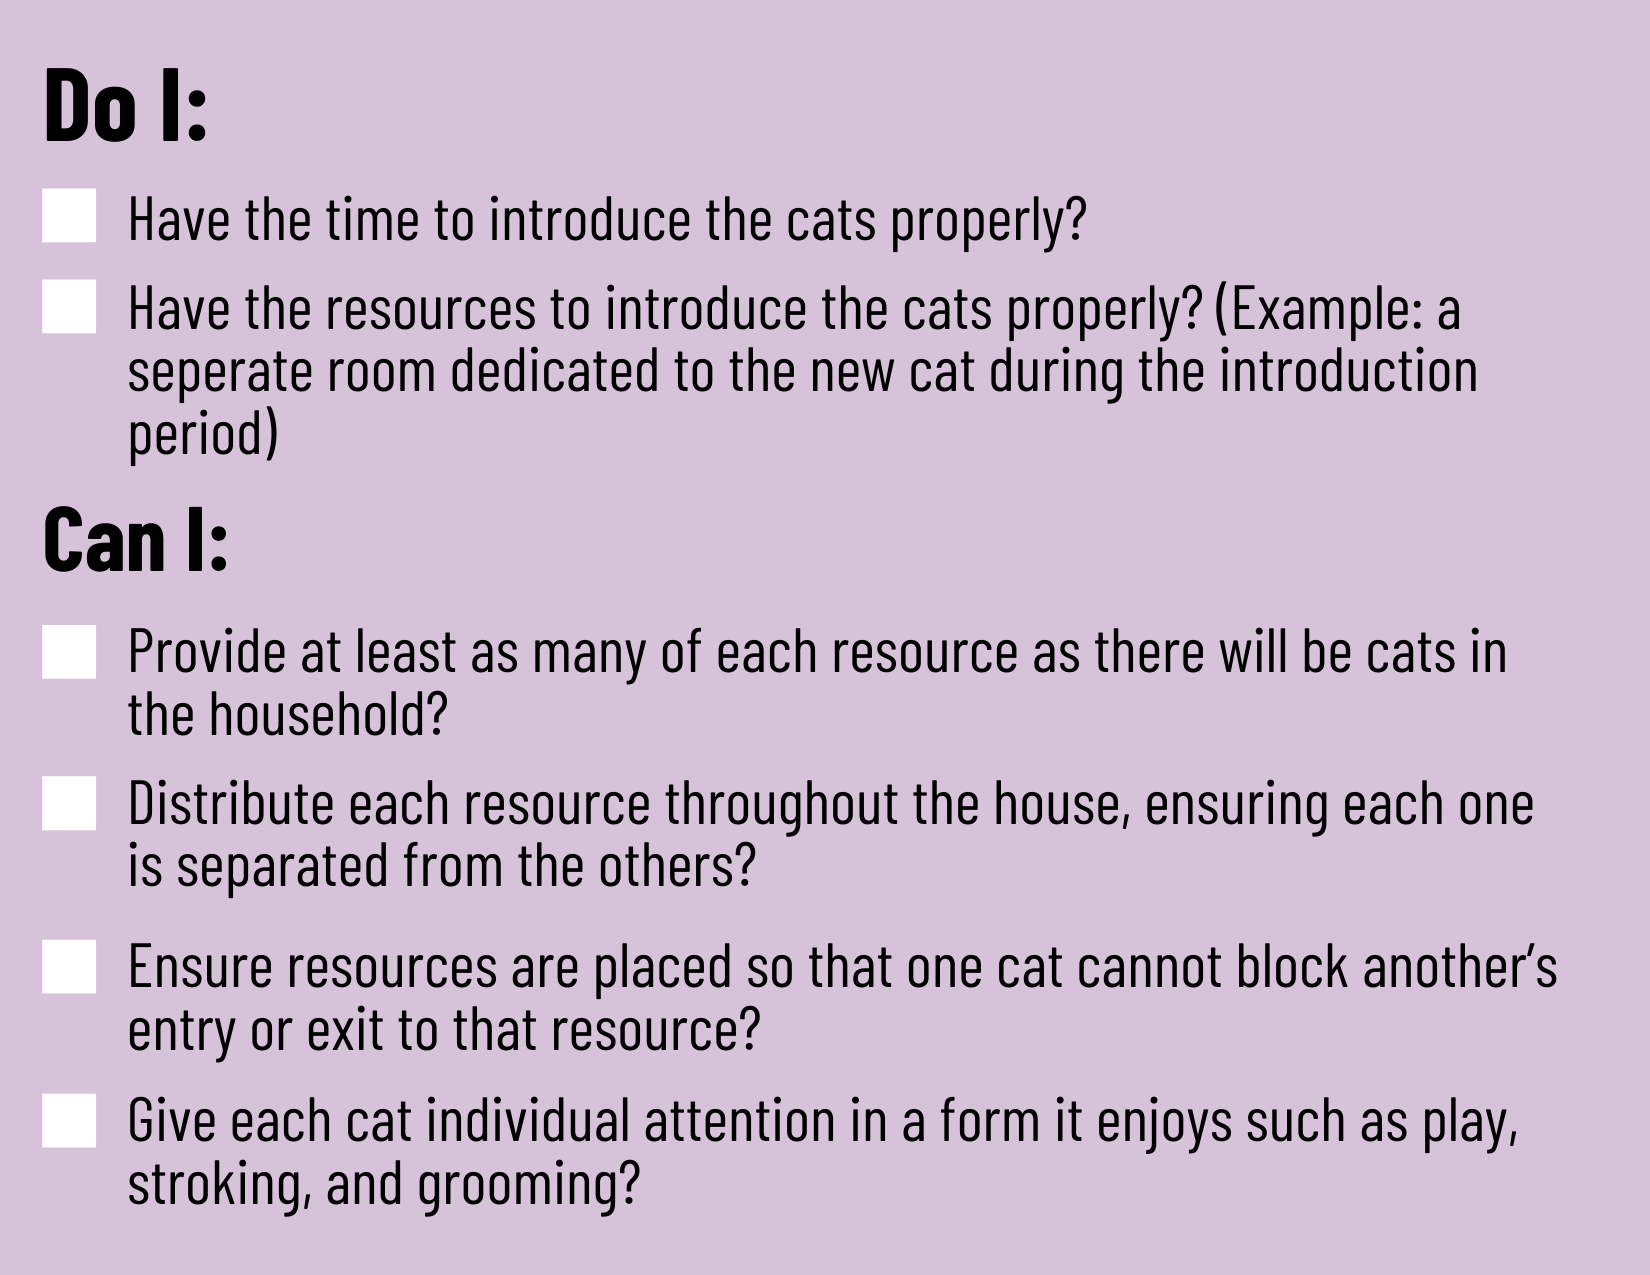 Checklist before getting another cat